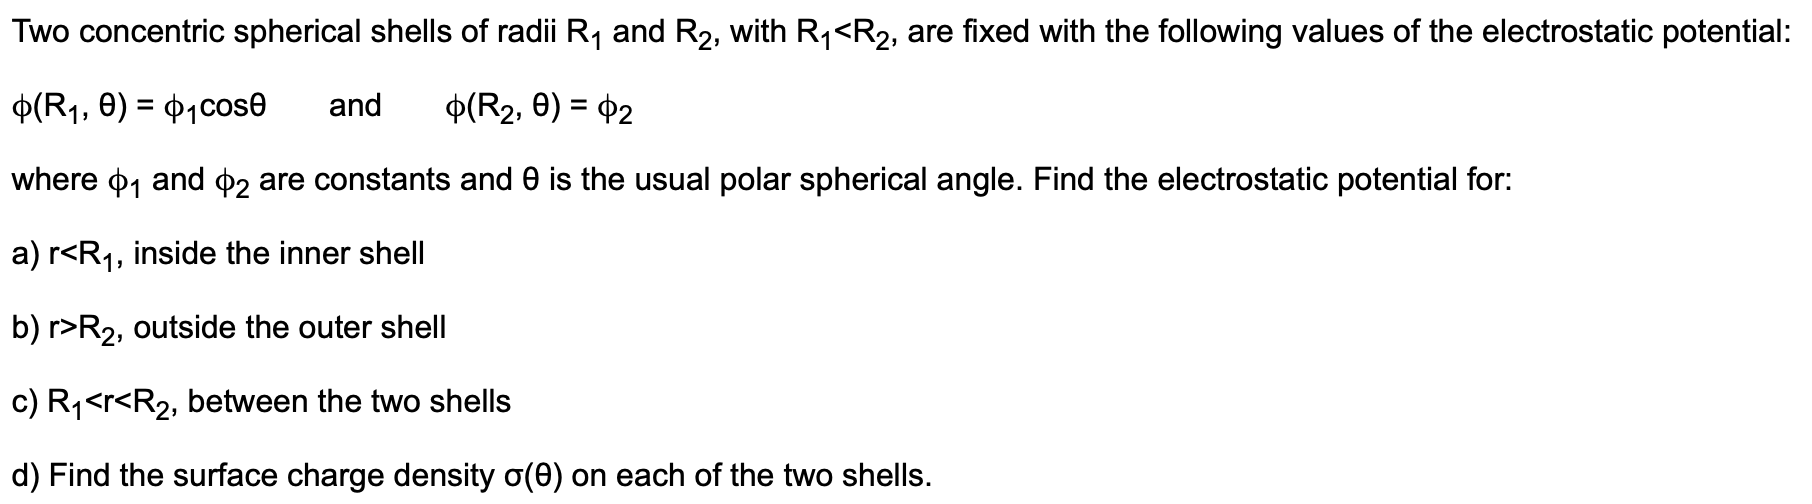 Two concentric spherical shells of radii R1 and R2, with R1<R2, are fixed with the following values of the electrostatic potential: p(R1, e) P1Cose and p(R2, 0) 2 where p1 and p2 are constants and 0 is the usual polar spherical angle. Find the electrostatic potential for: a) r<R1, inside the inner shell b) r R2, outside the outer shell c) R1<r<R2, between the two shells d) Find the surface charge density o(e) on each of the two shells.